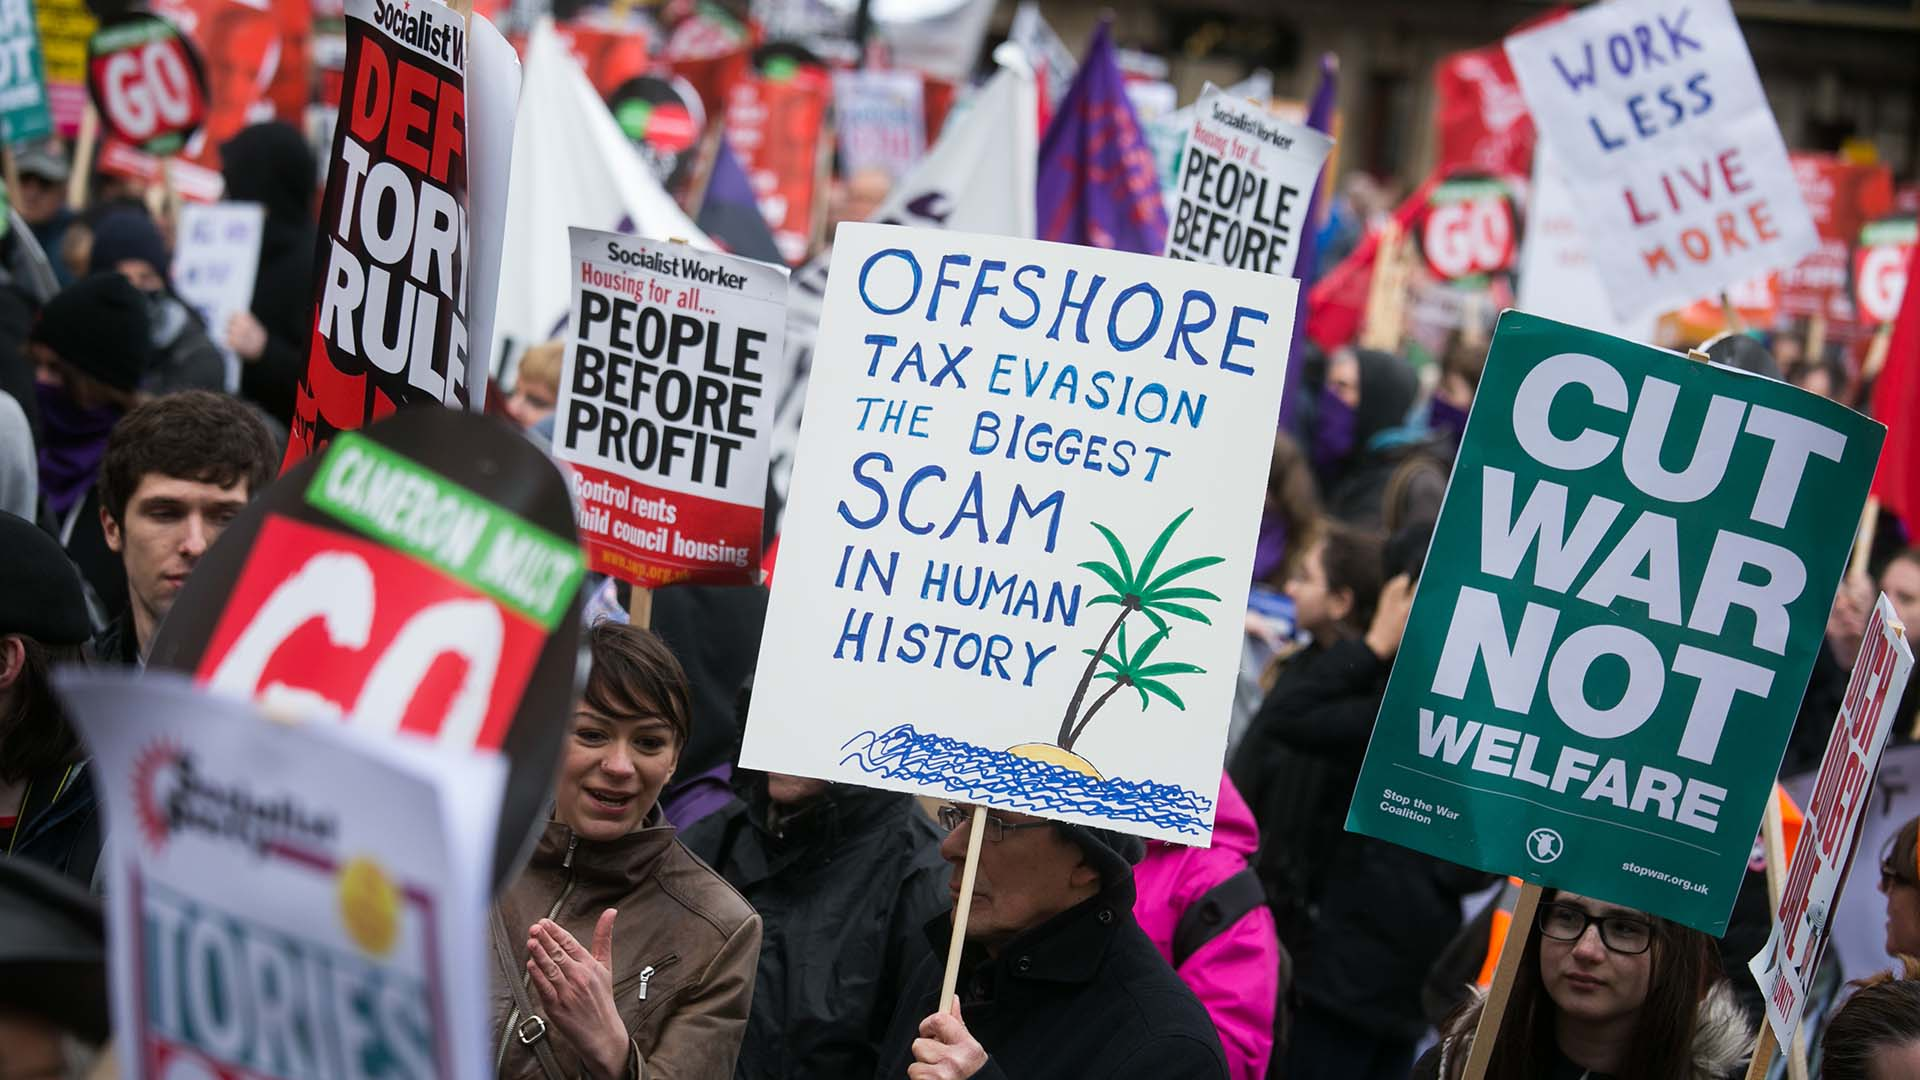 London Panama Papers protest